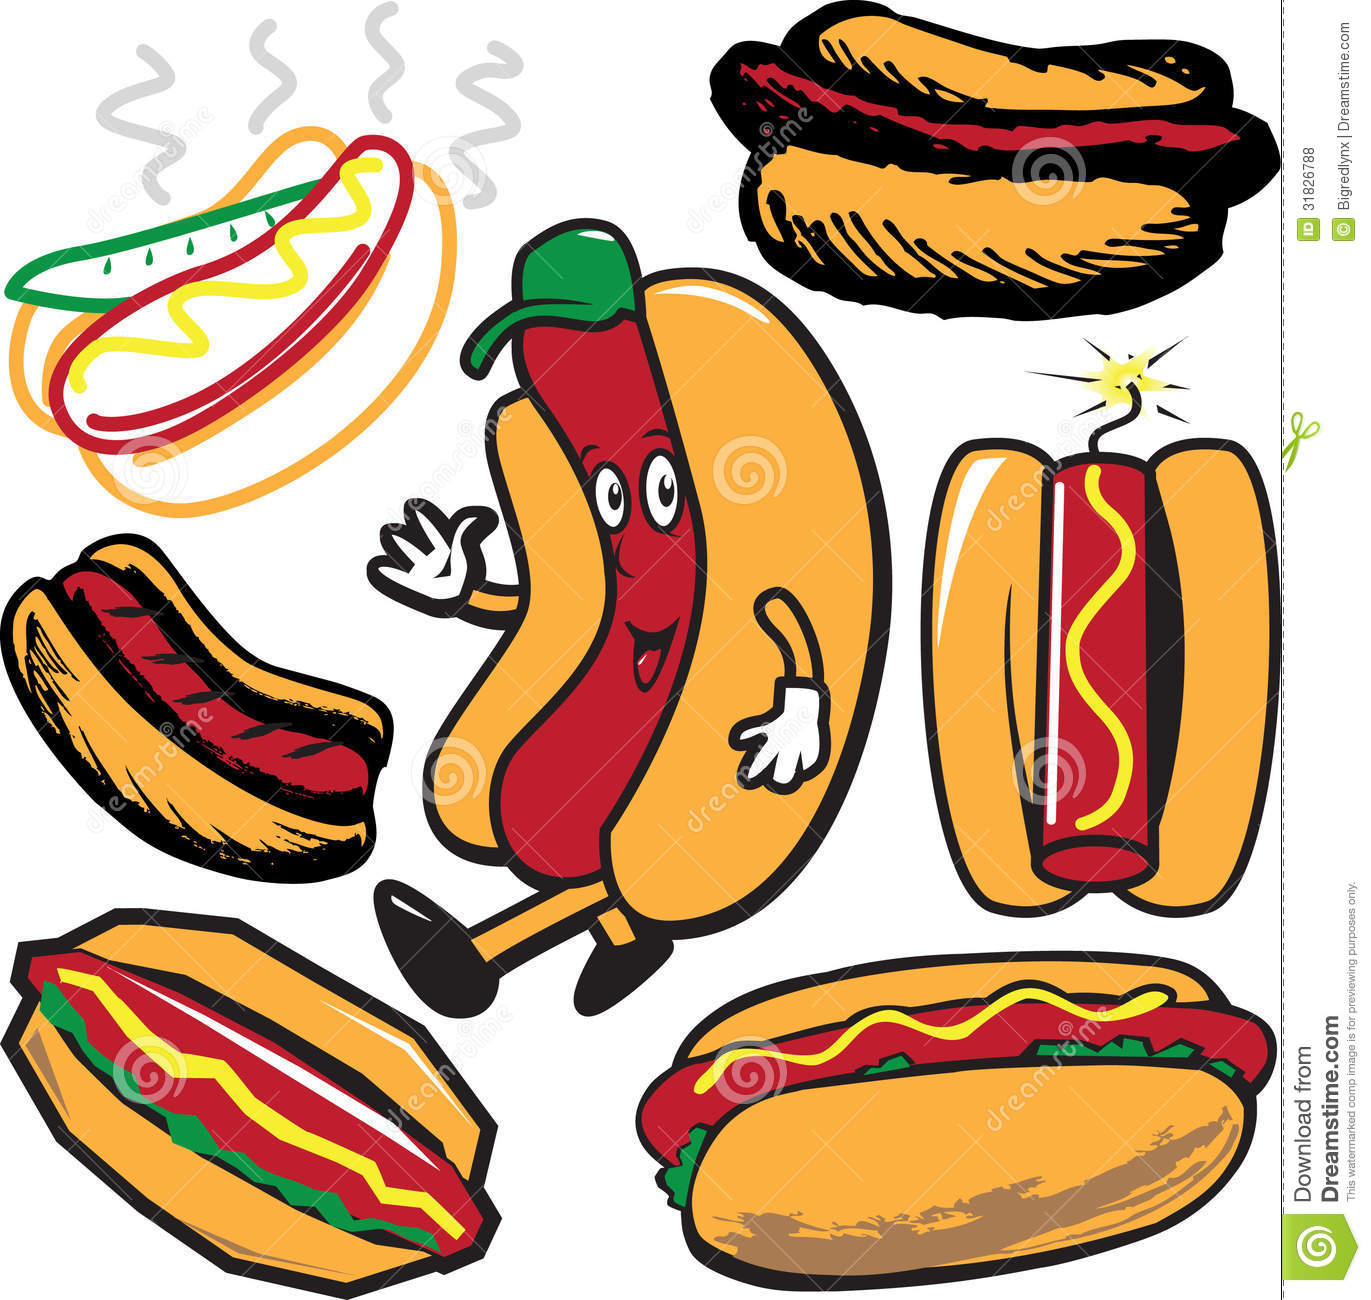 Clip art collection of hot dog symbols and icons.